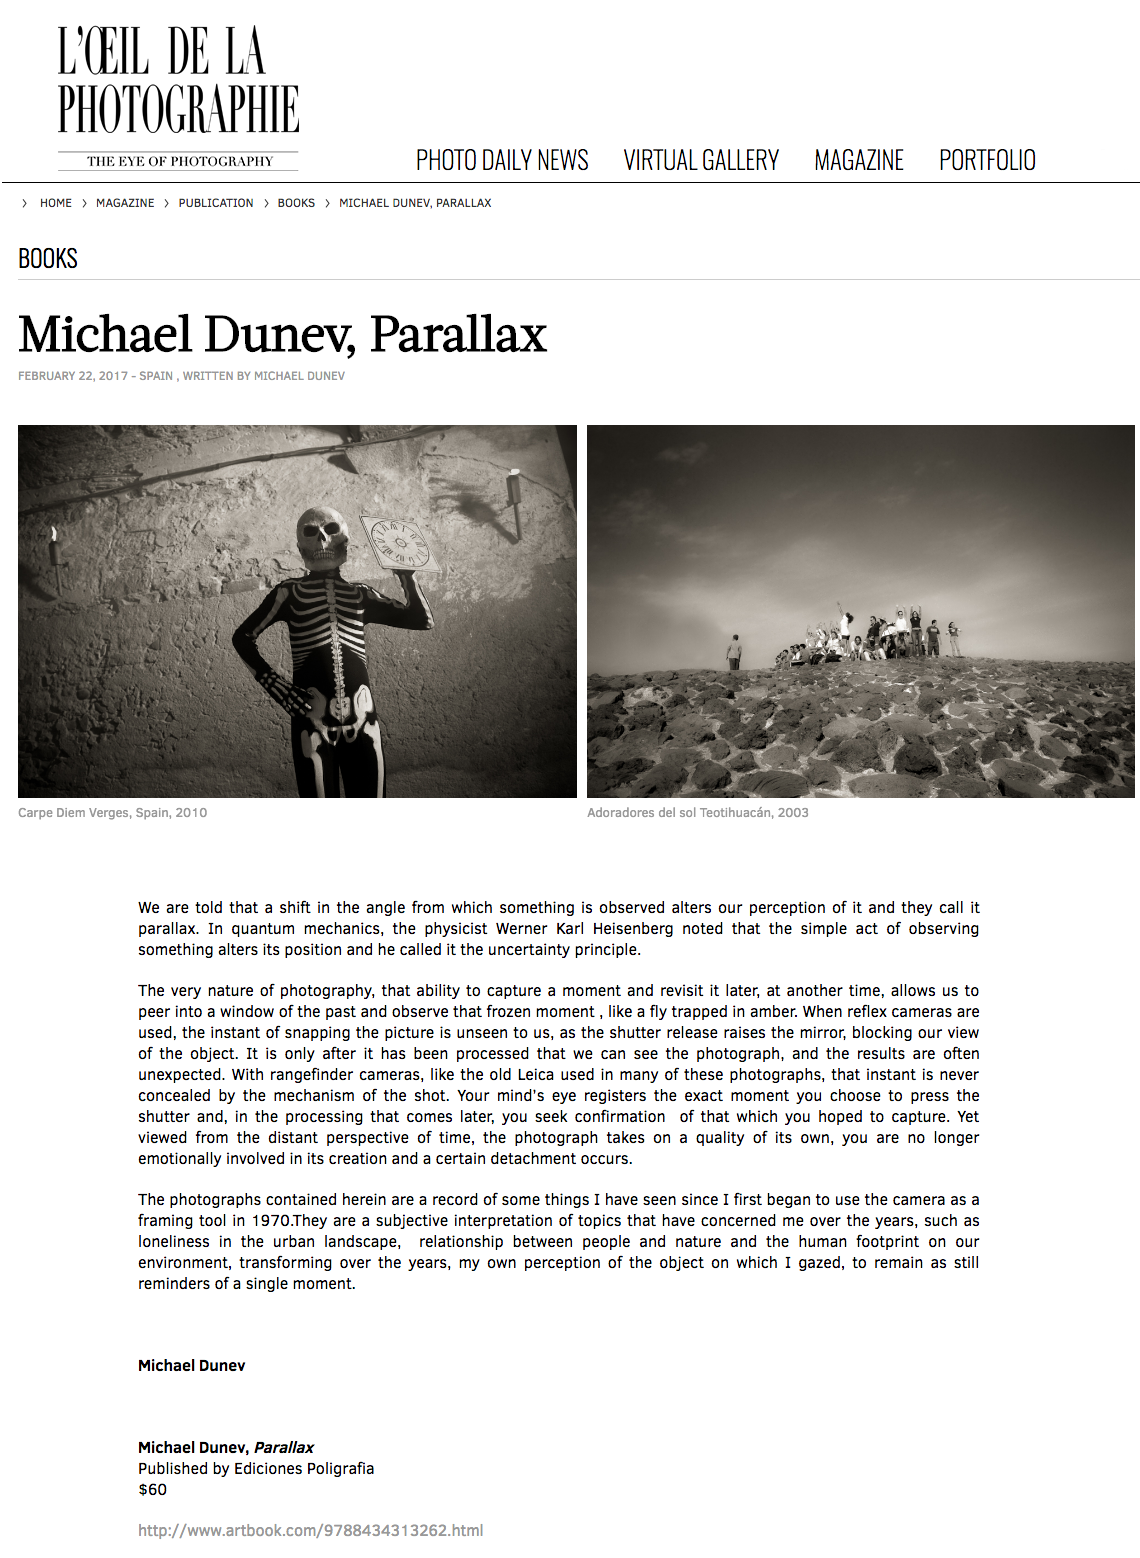 Press review about Parallax in L'Oeil de la Photographie